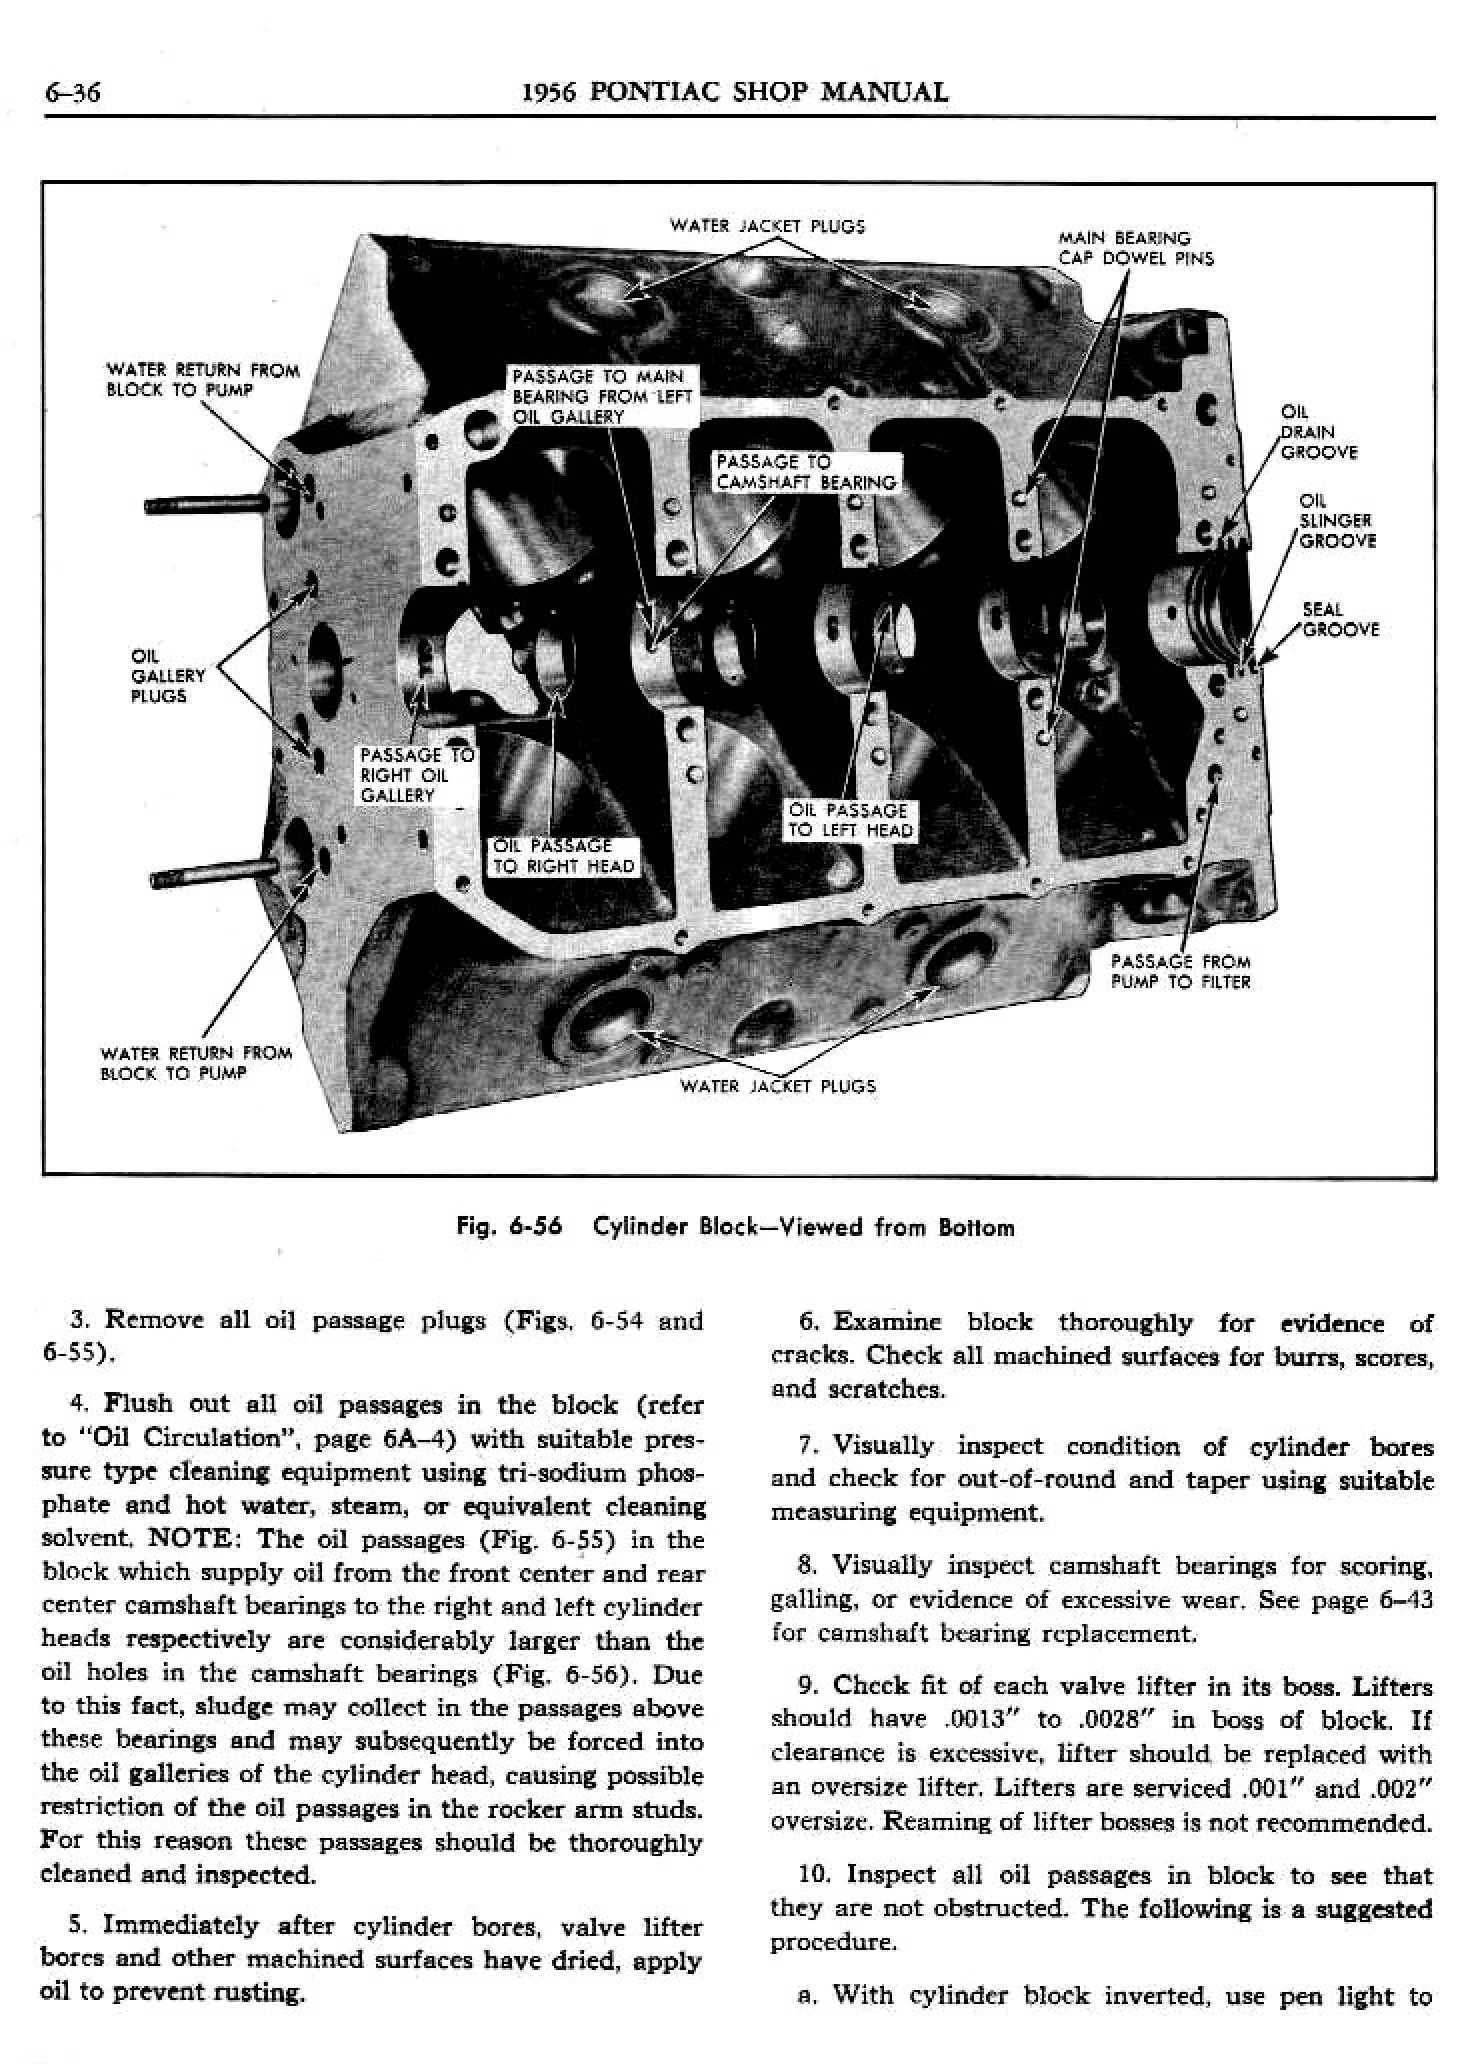 1956 Pontiac Shop Manual- Engine Page 37 of 56